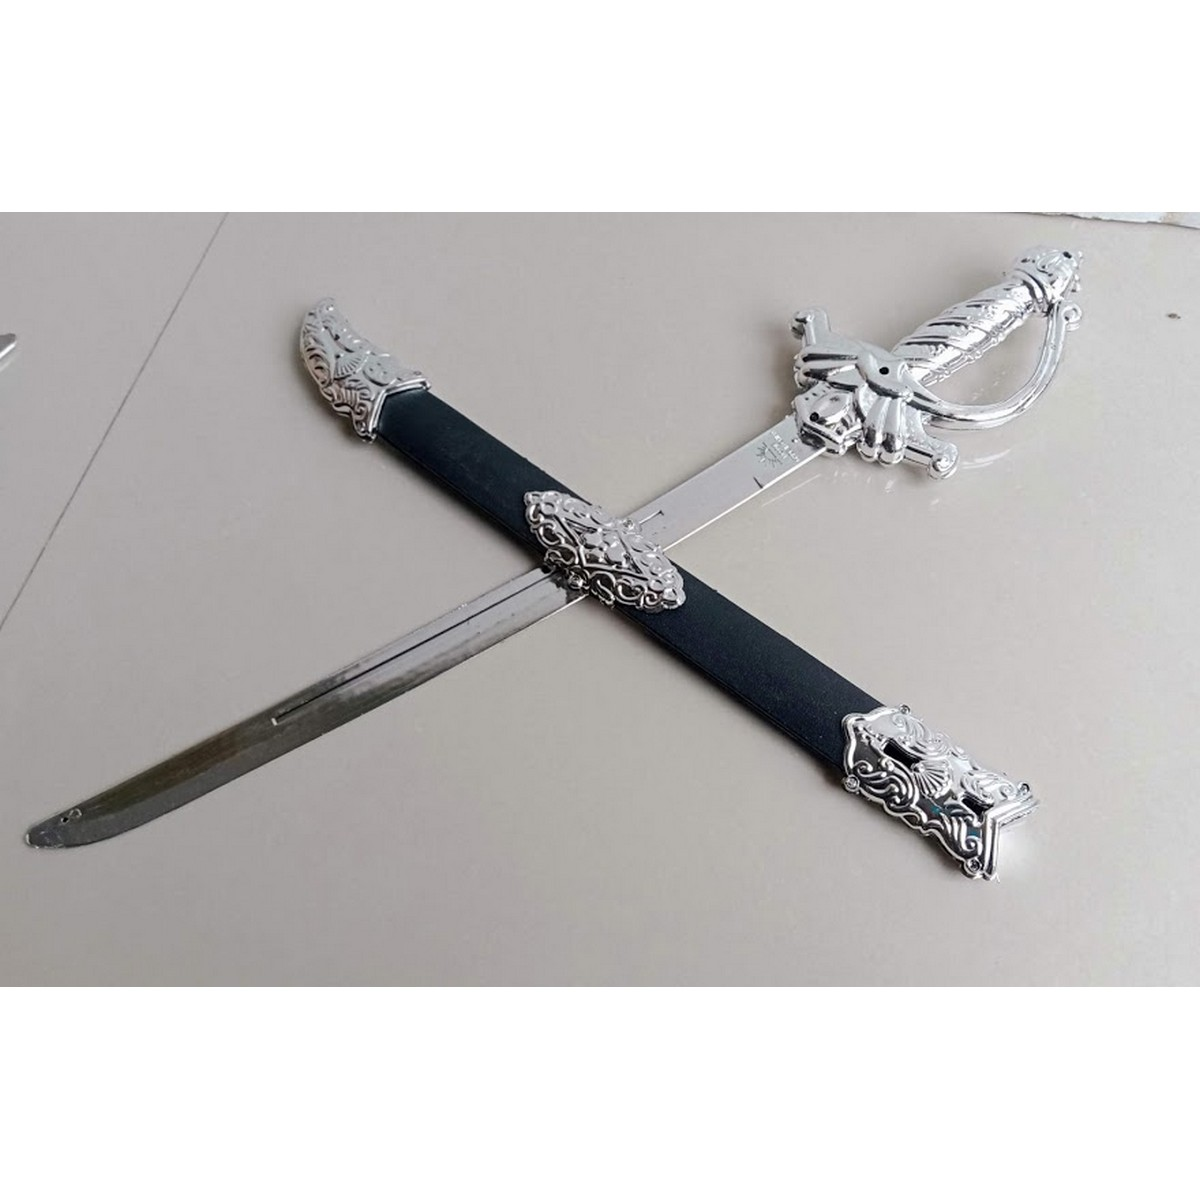 Osman Bey Sword+toy set for kids 24 inches